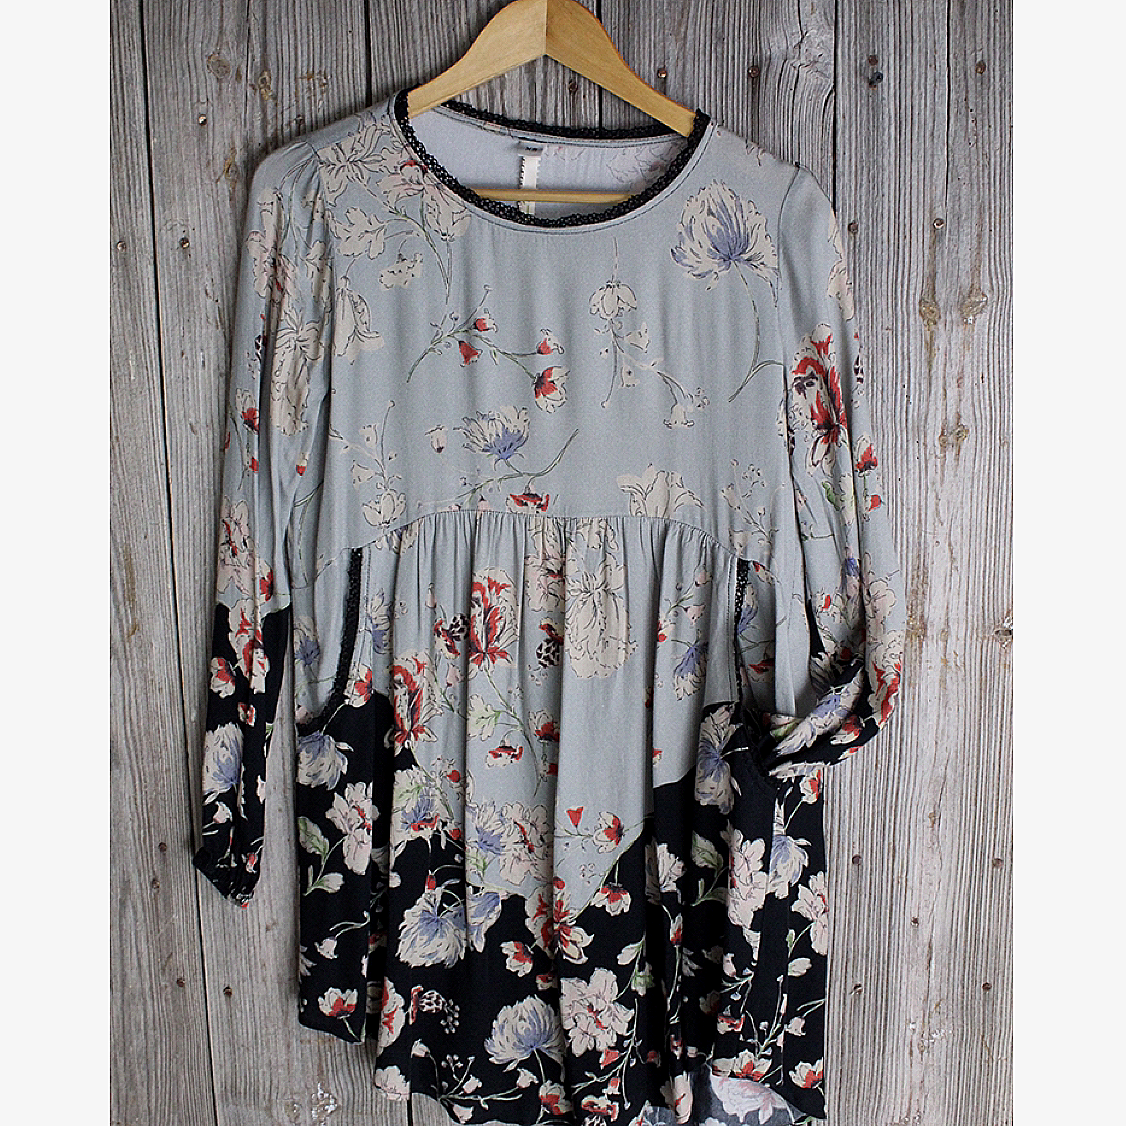 Floral Tunic from Uncle Frank